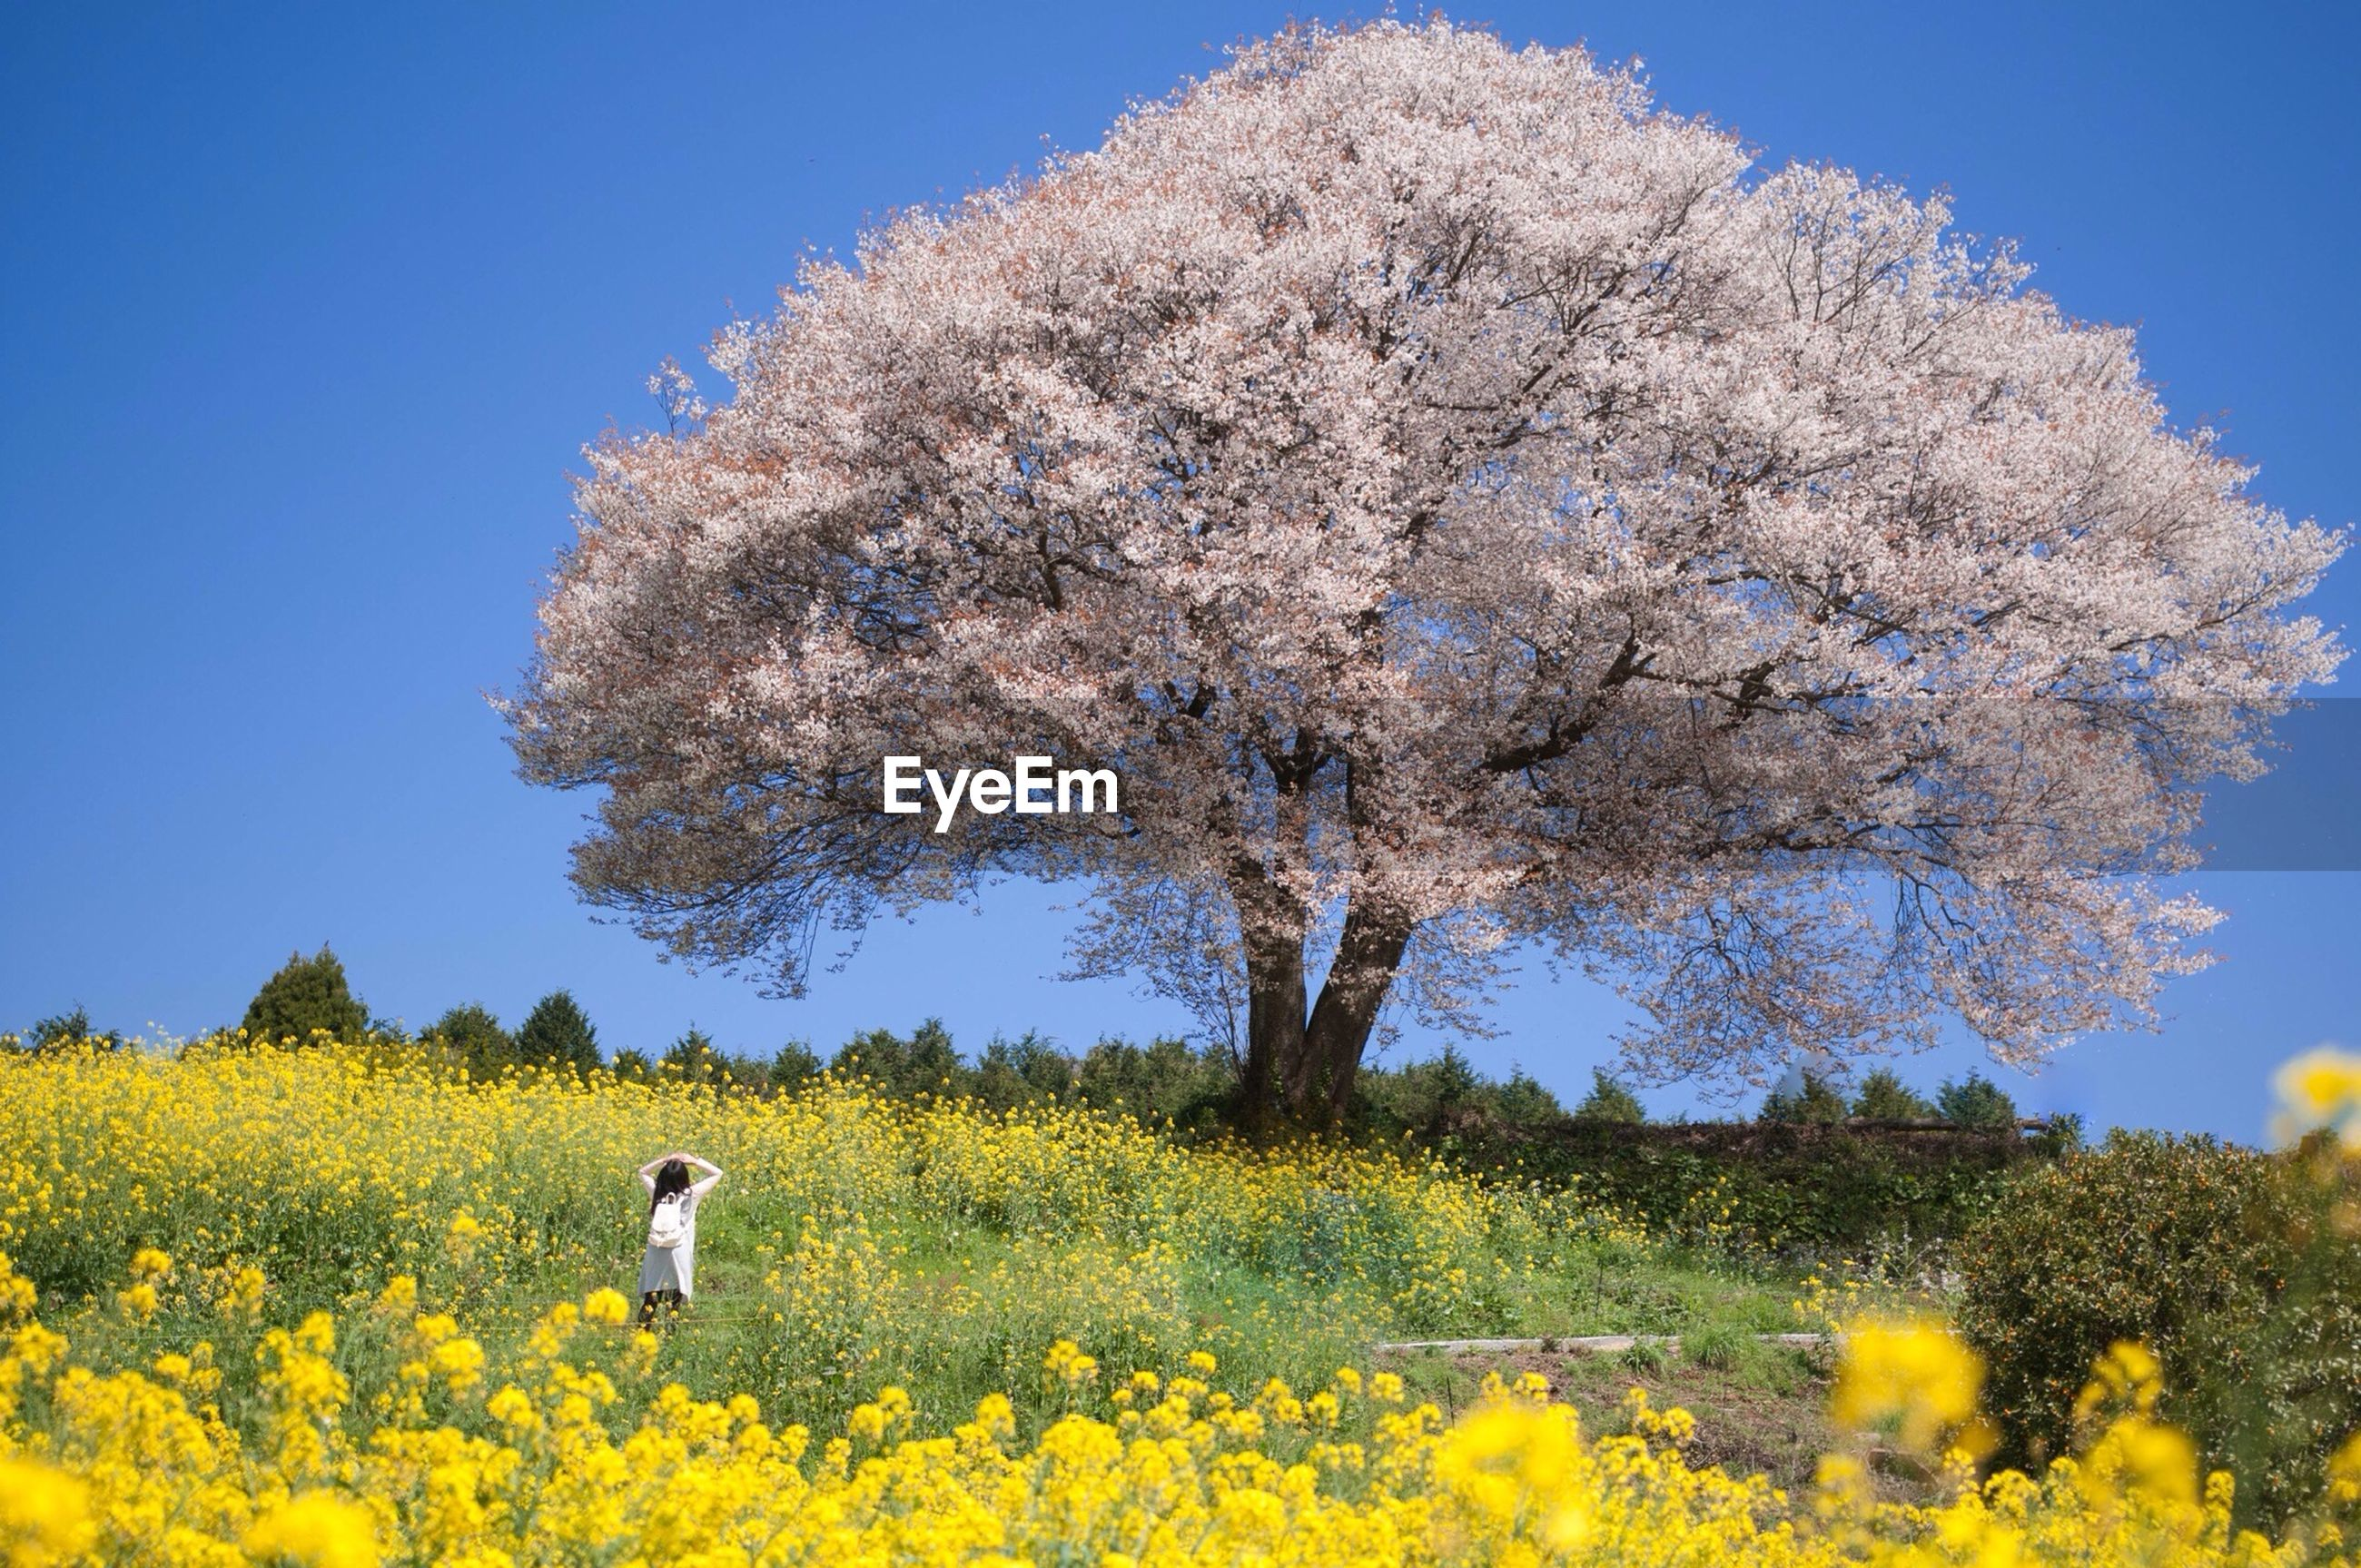 Rear view of girl looking at cherry blossom tree in meadow